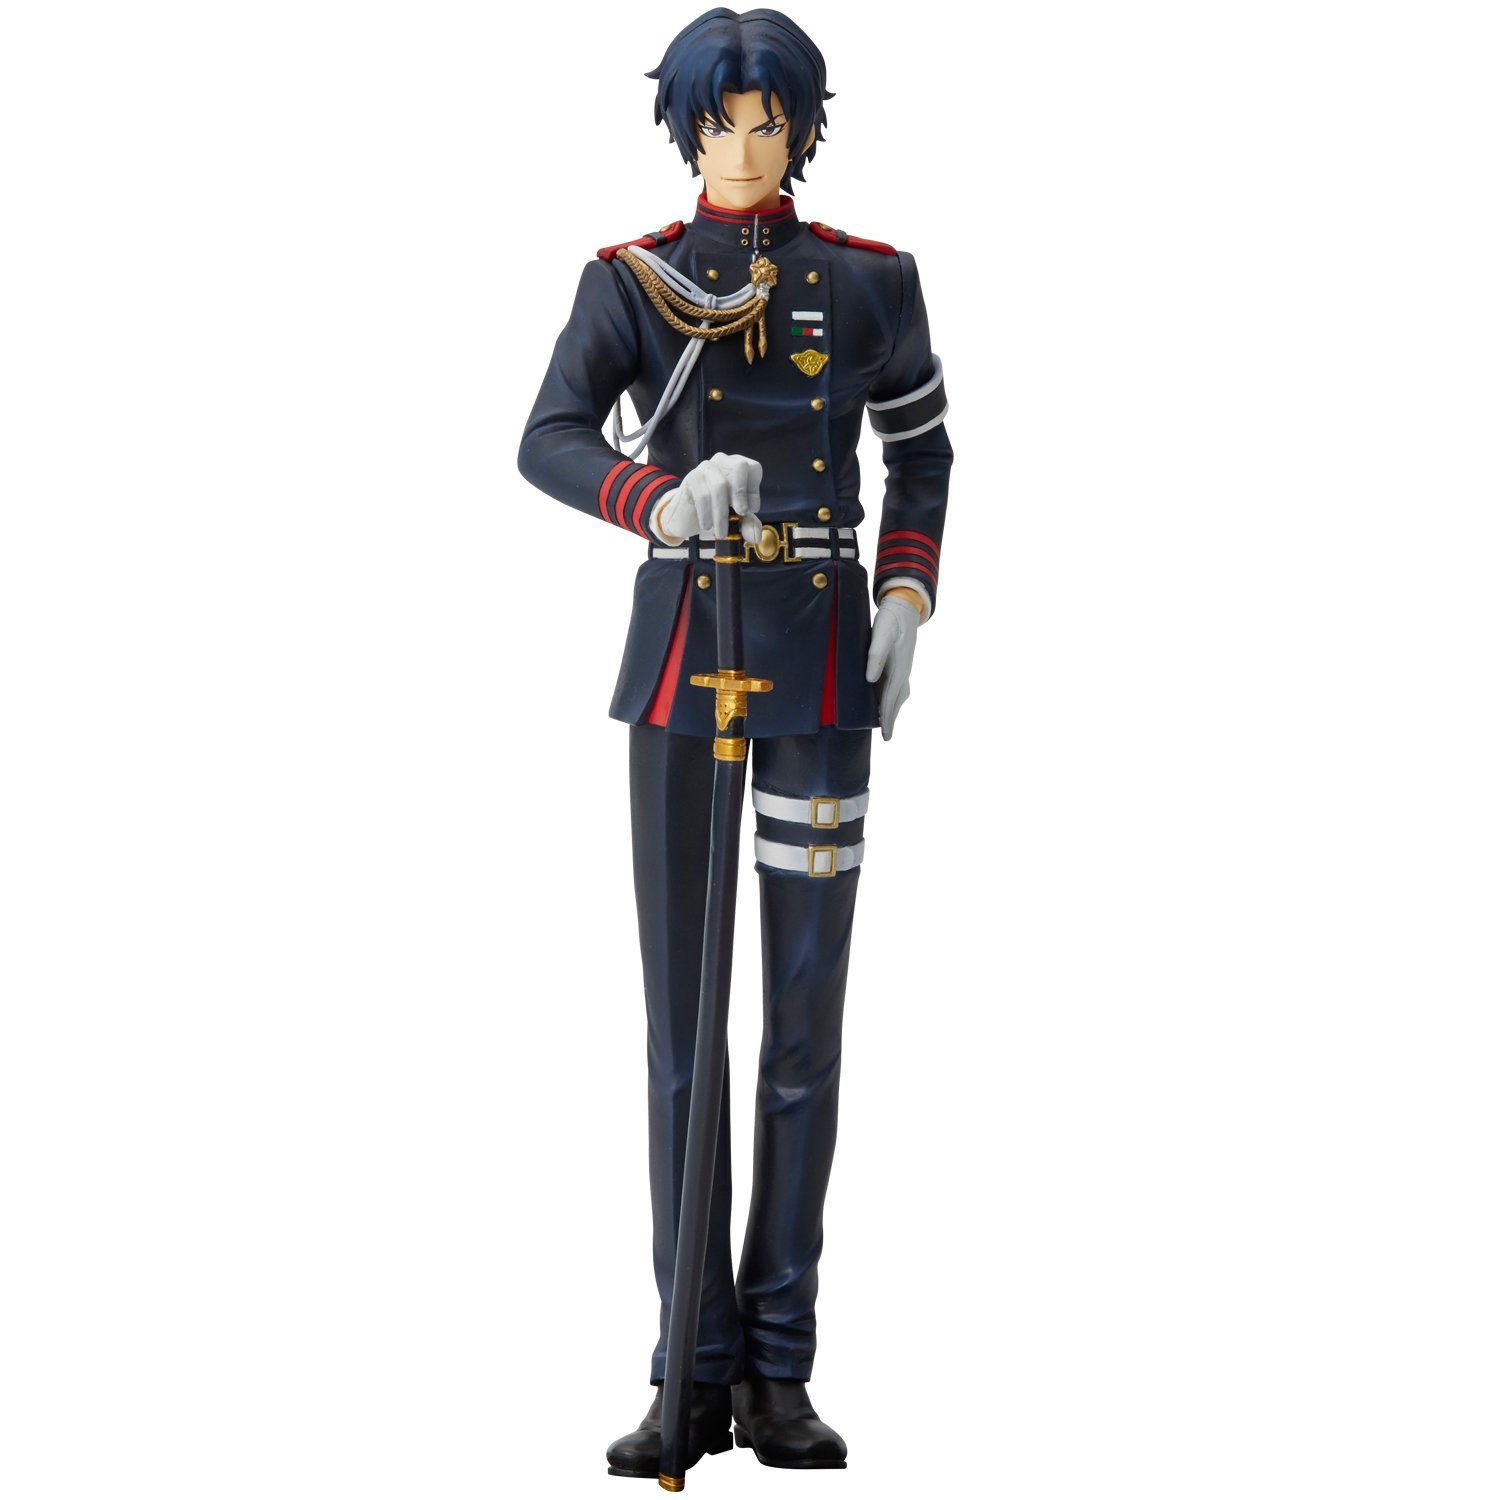 Seraph of the End Union Creative mensHdge Technical Statue No.24 Ichinose Guren Figure Rinkya